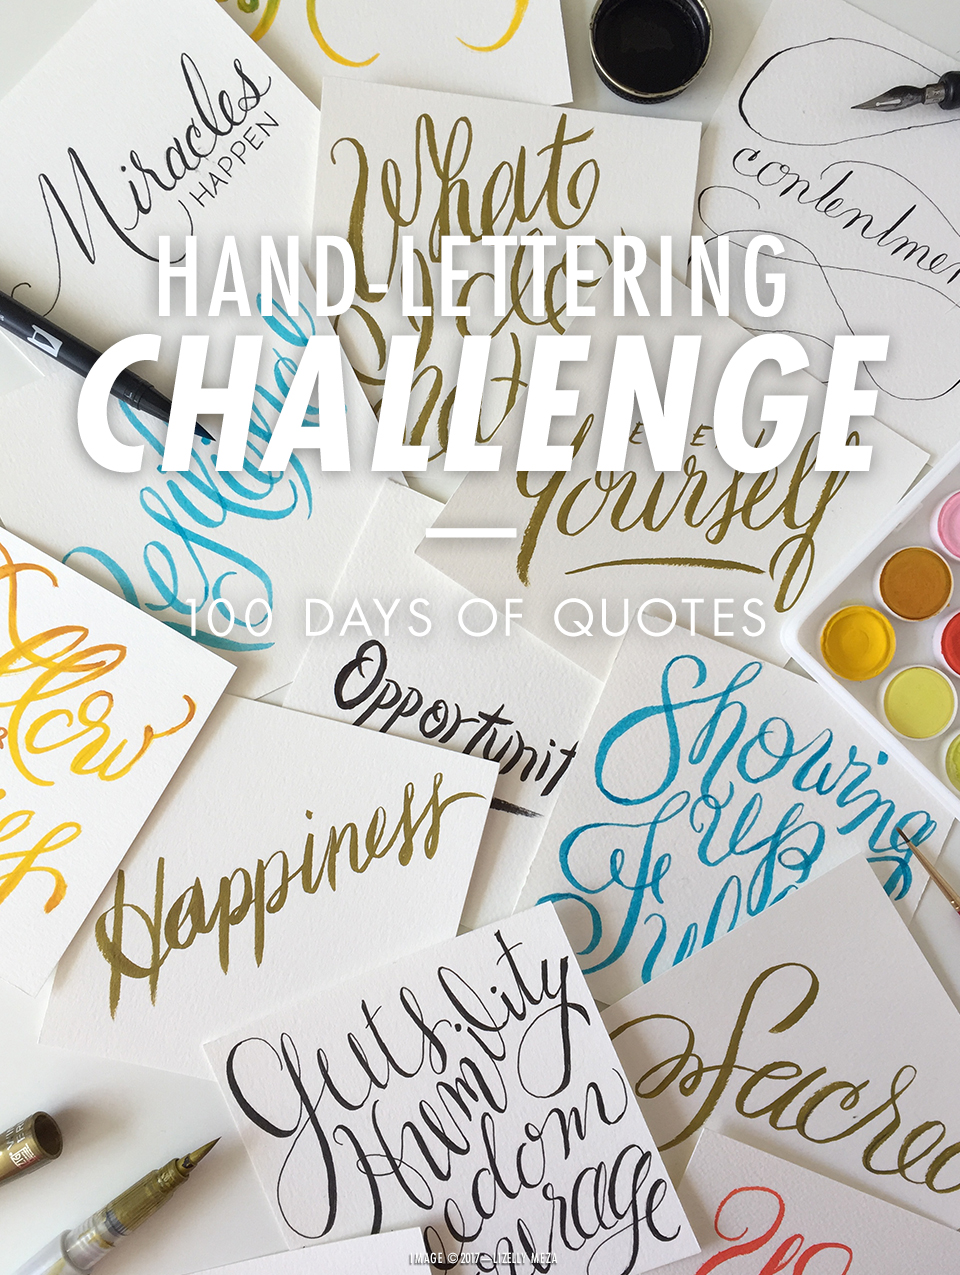 100-Day Challenge—100 Days of Hand-lettered Quotes // Curiosities Allowed // Creative blog of Lizelly Meza